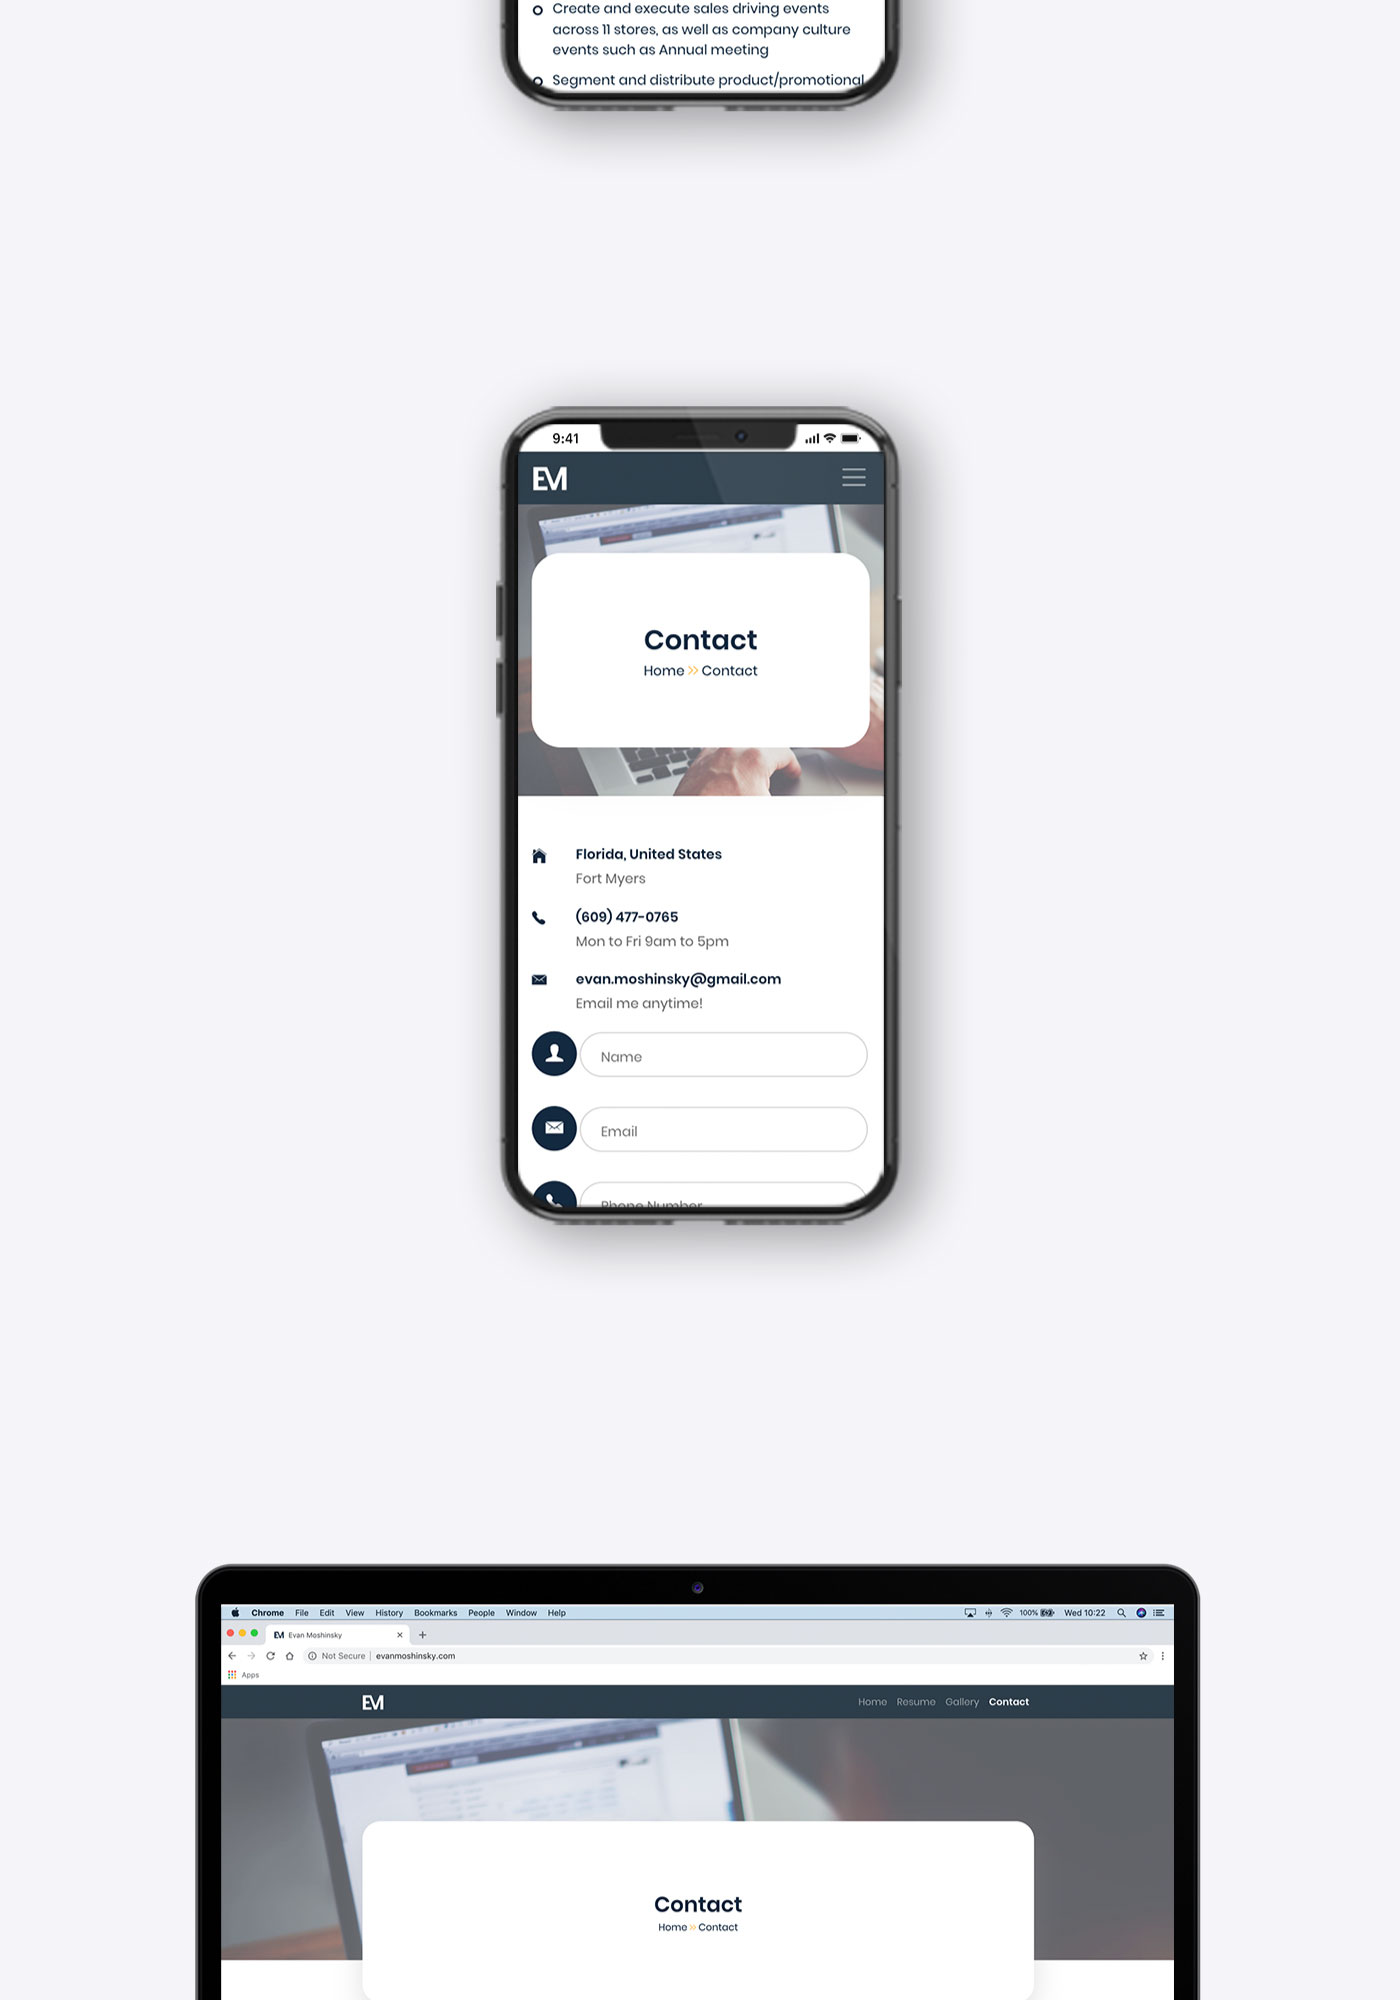 Evan Moshinsky contact form layout showing on iPhone